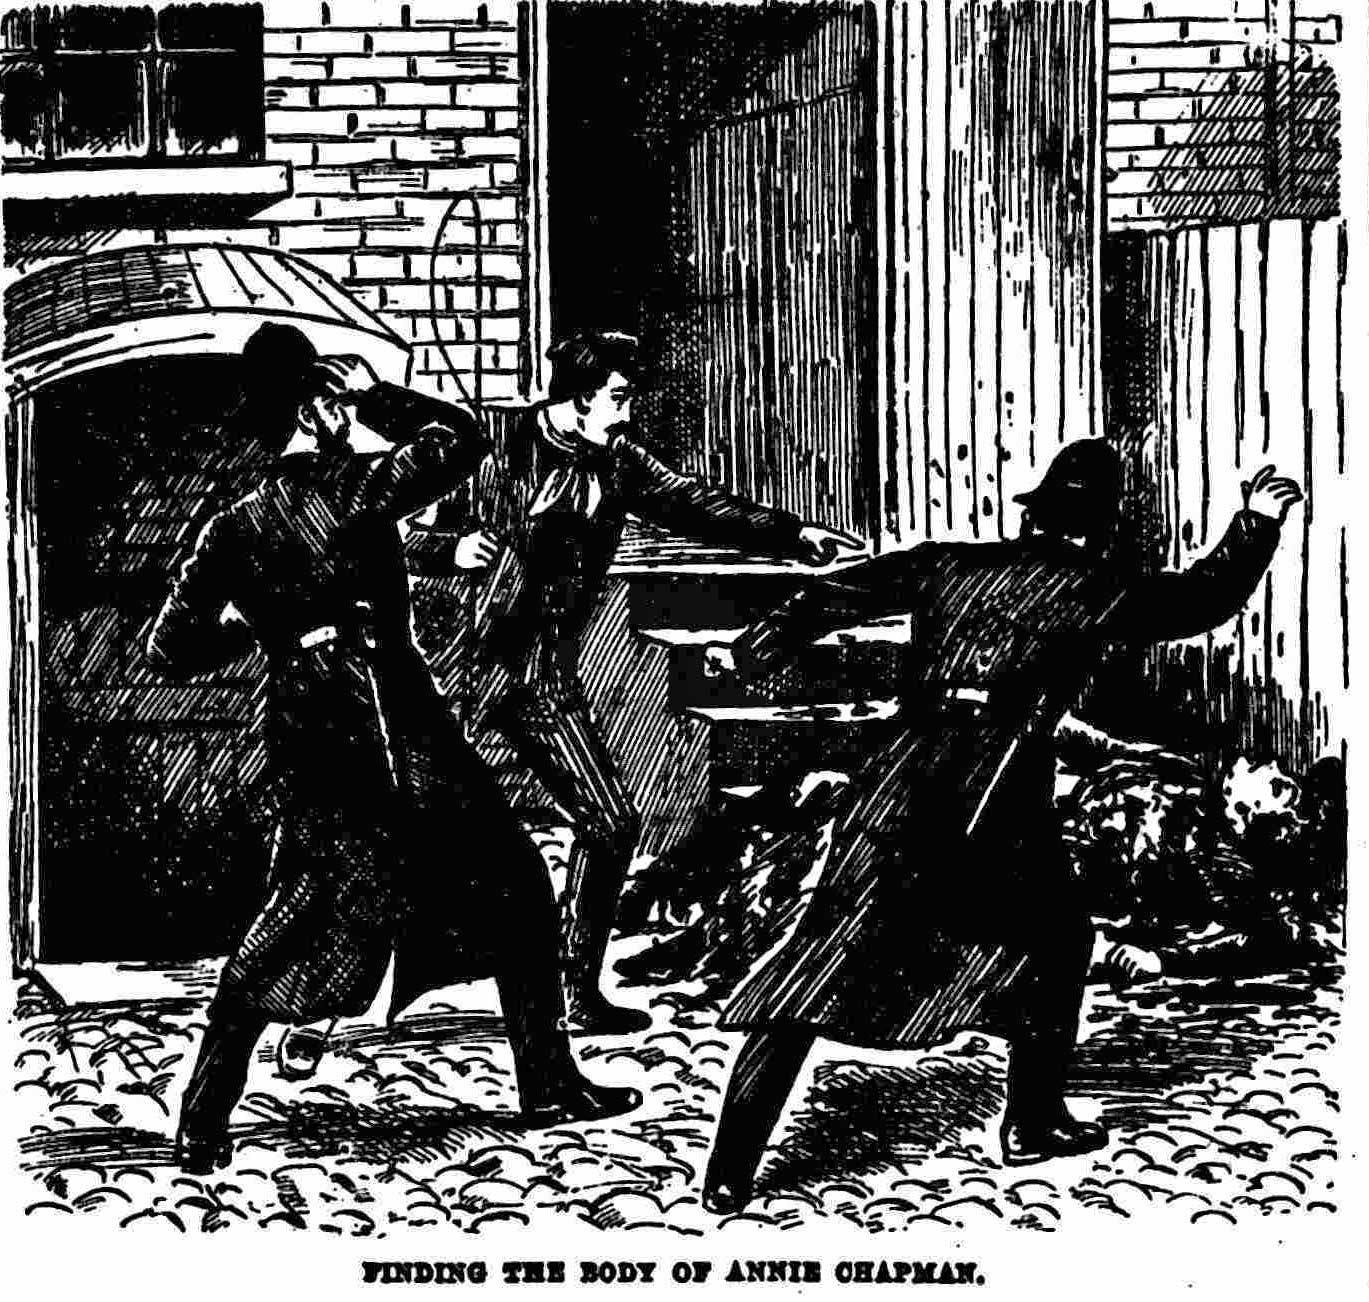 An Illustration showing the police looking at the body of Annie Chapman.